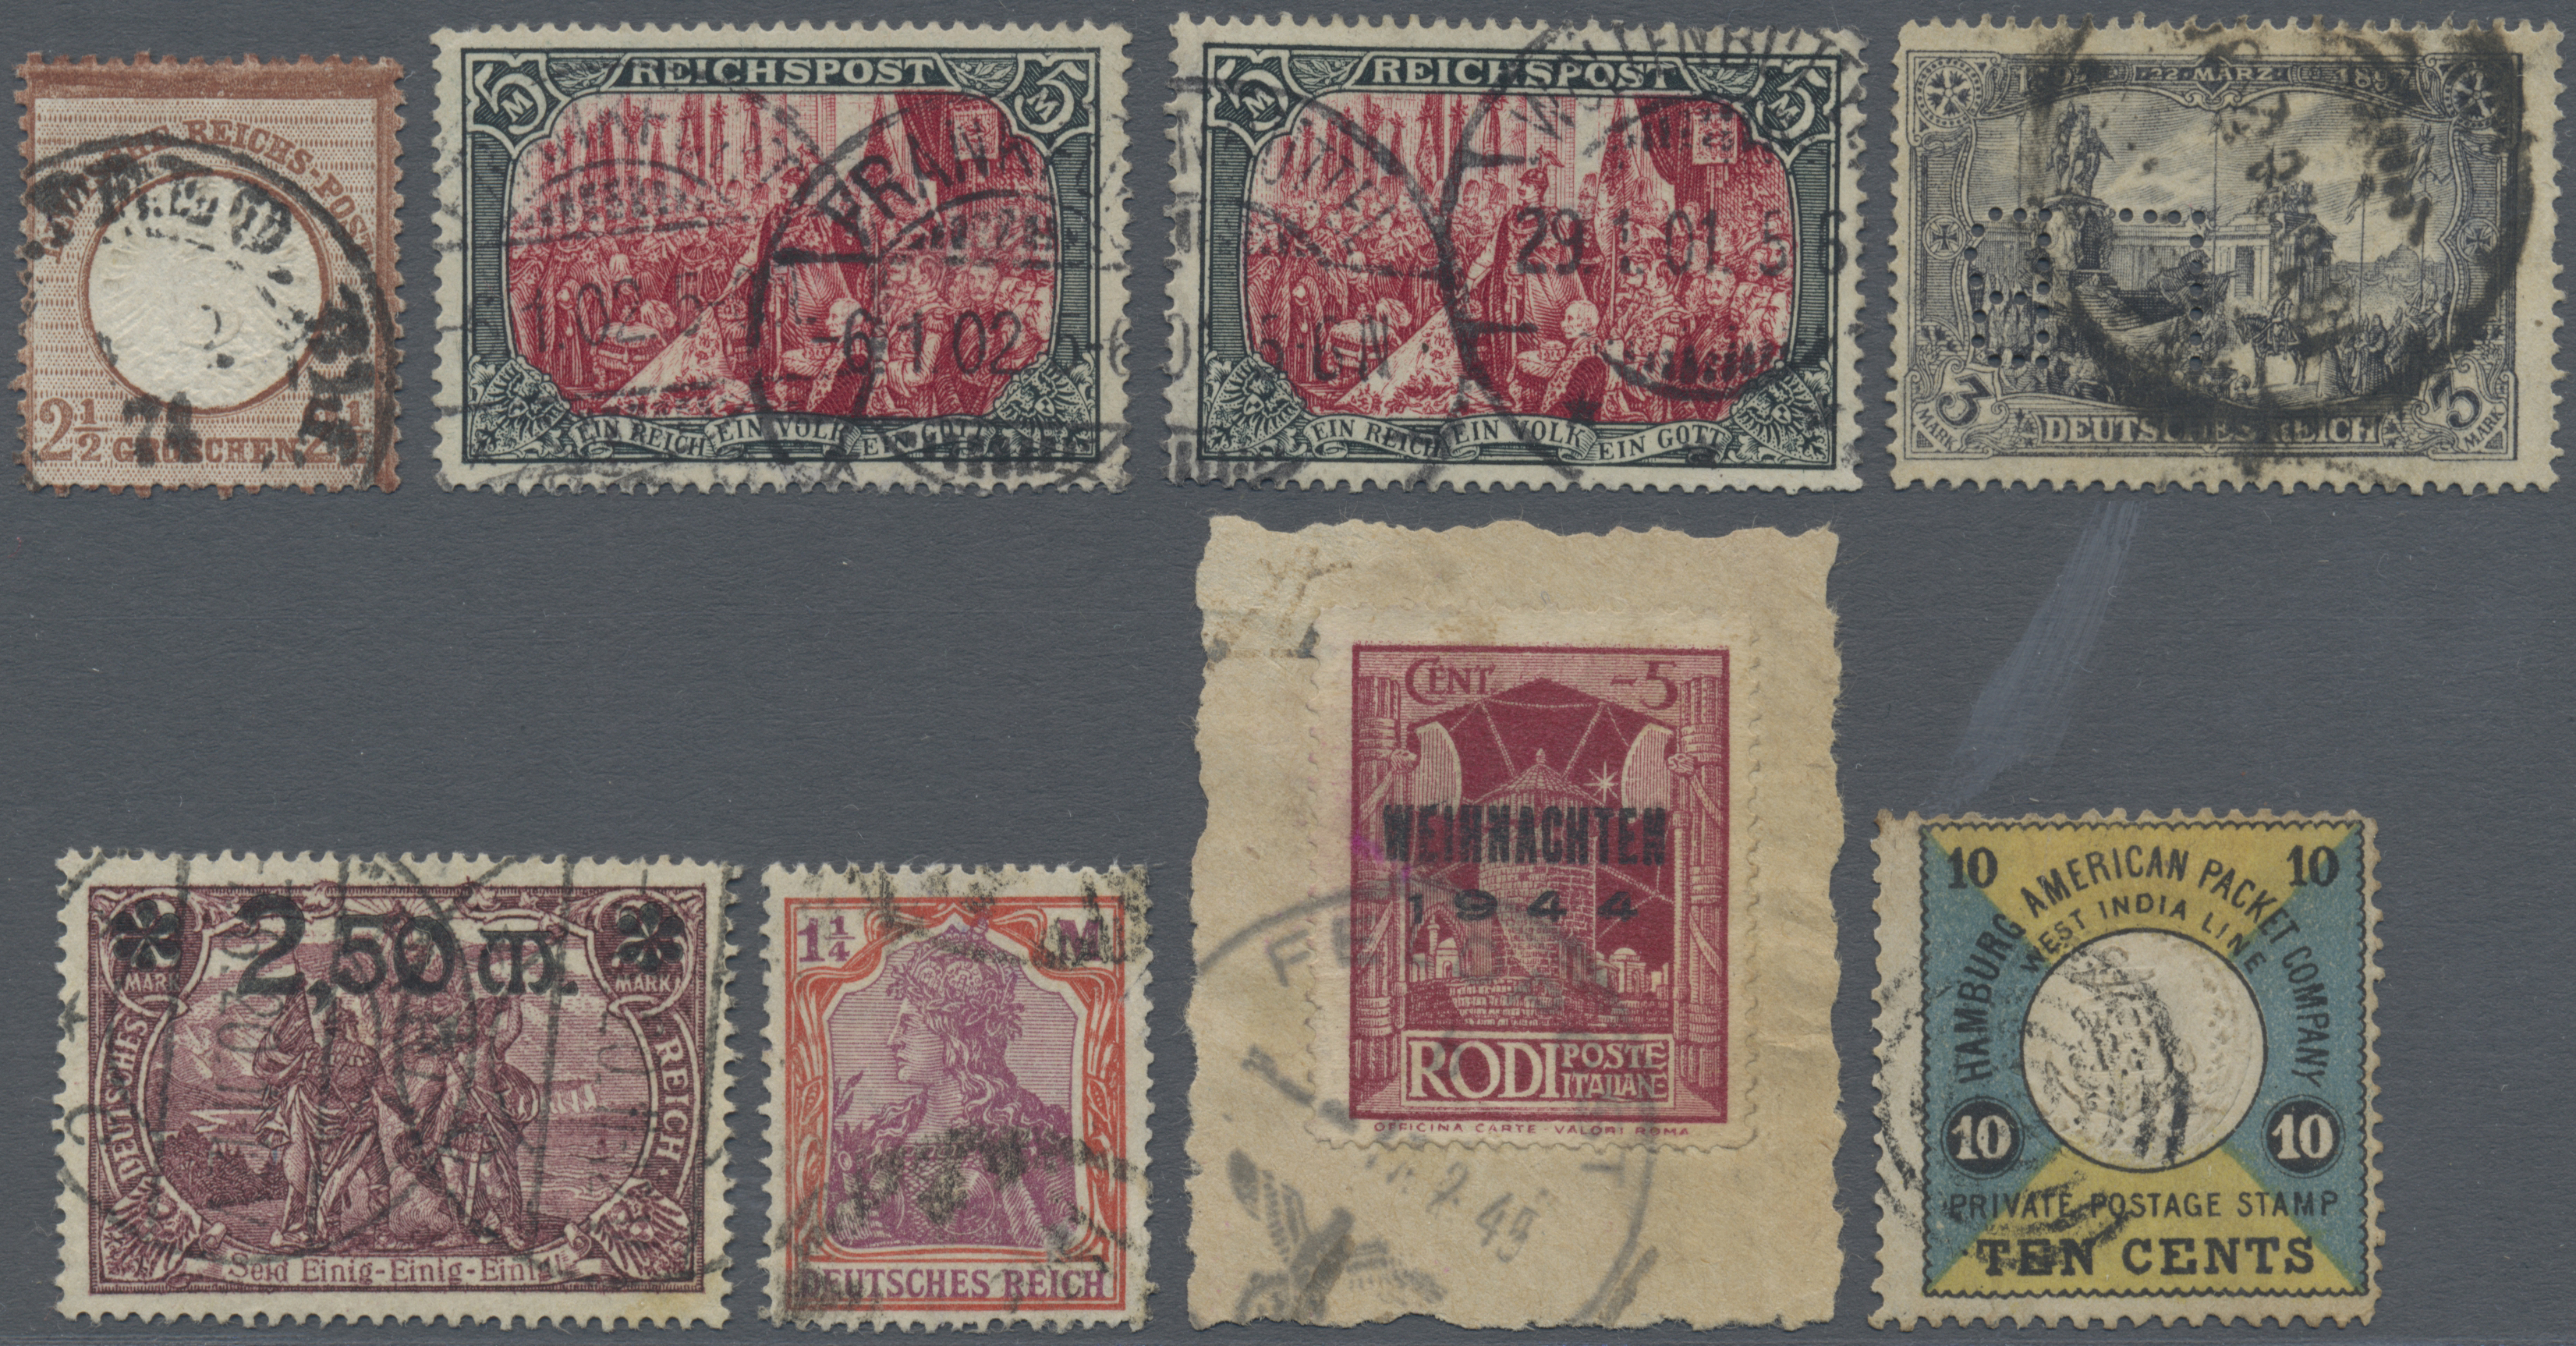 Lot 36465 - Deutsches Reich  -  Auktionshaus Christoph Gärtner GmbH & Co. KG Sale #44 Collections Germany